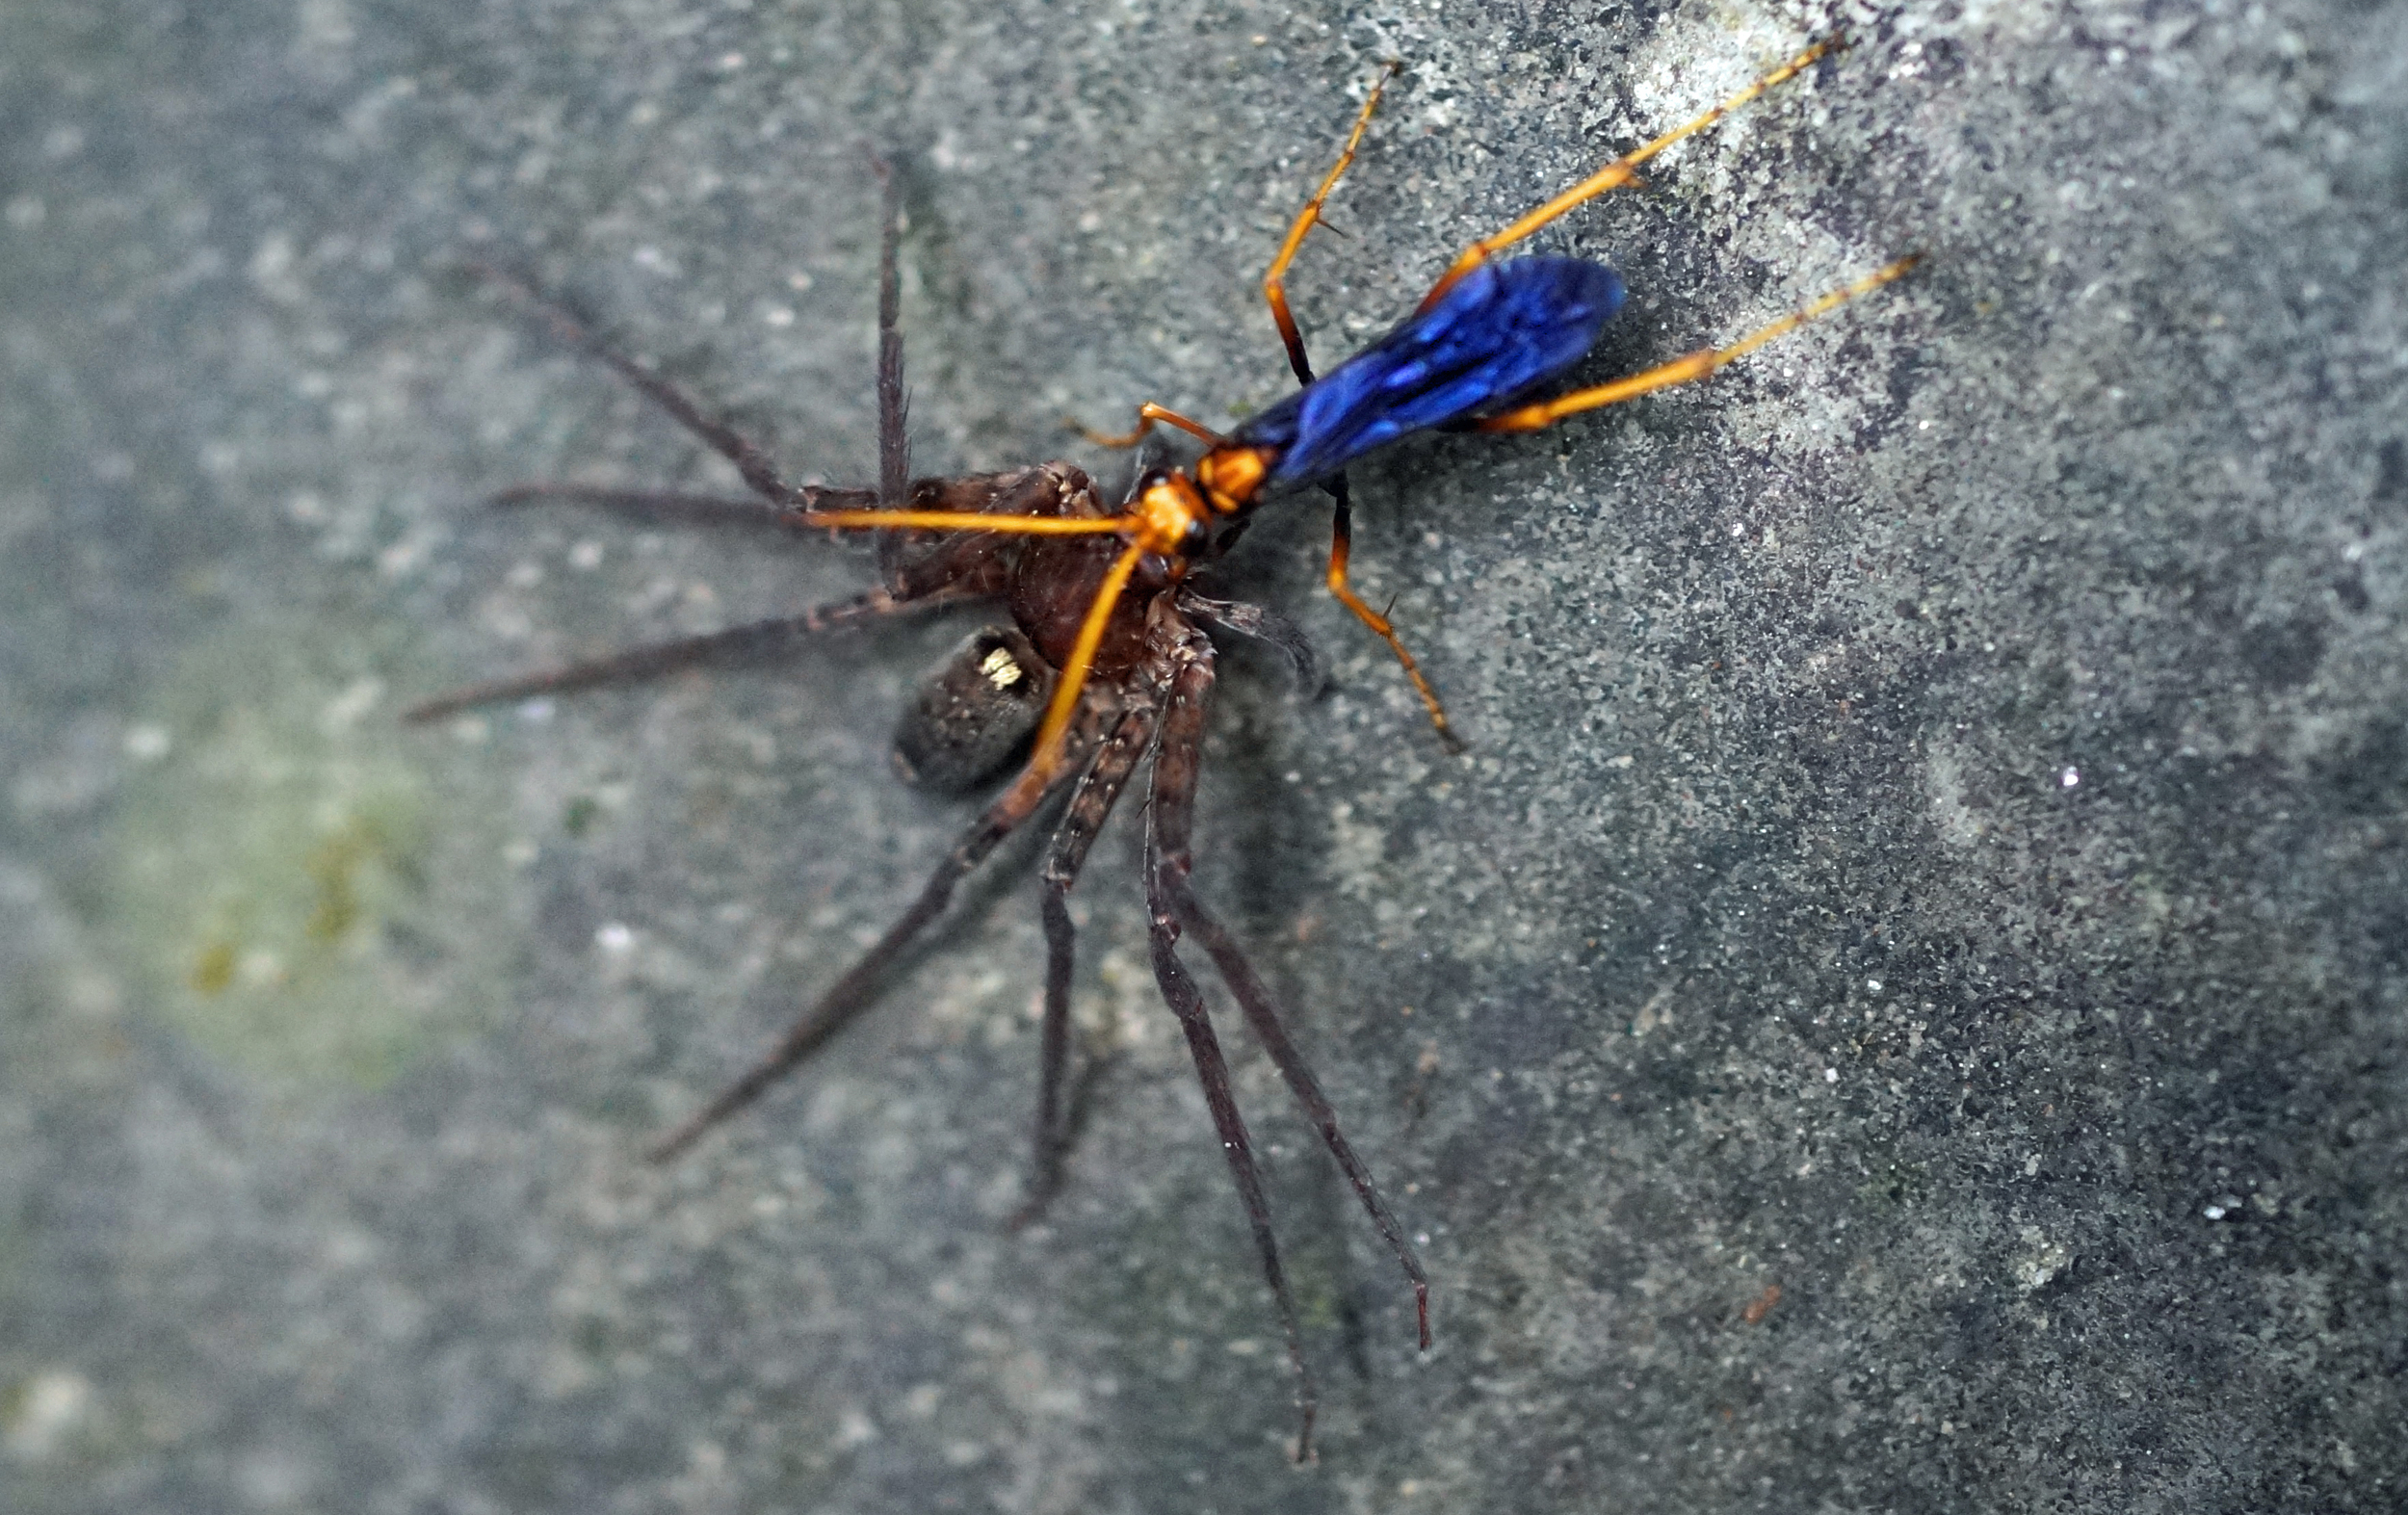 I have often seen these blue winged bugs at the Peak and often wondered if they were poisonous and yes, they are, this poor spider was dead in a nanosecond after being bitten by said bug